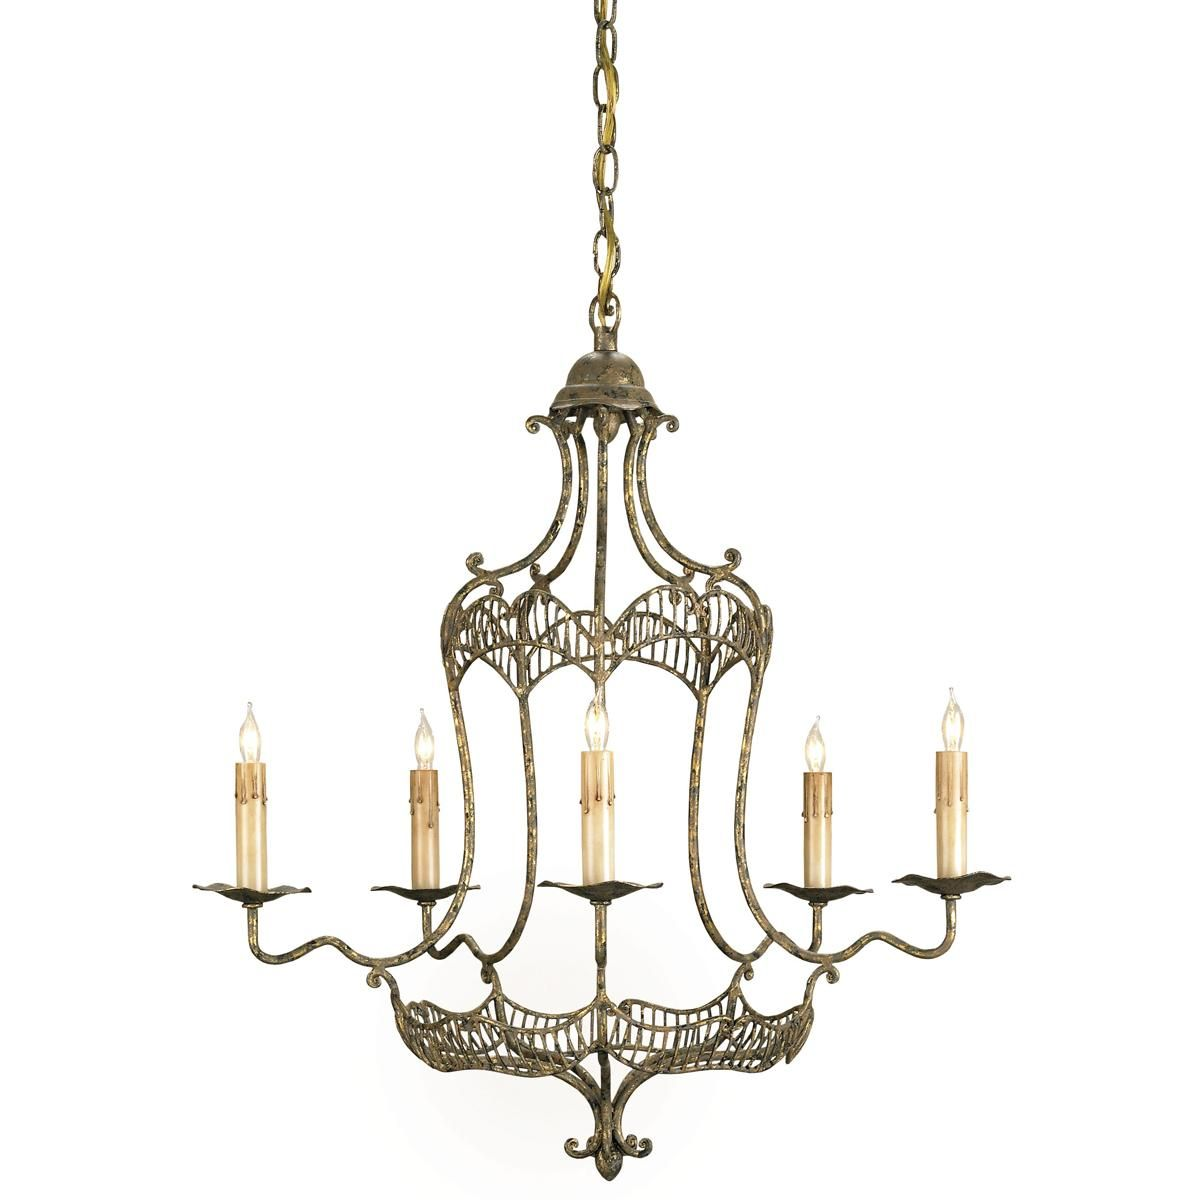 Gold Carnival Swag Chandelier - 5 Lt. | For the Home | Pinterest ...